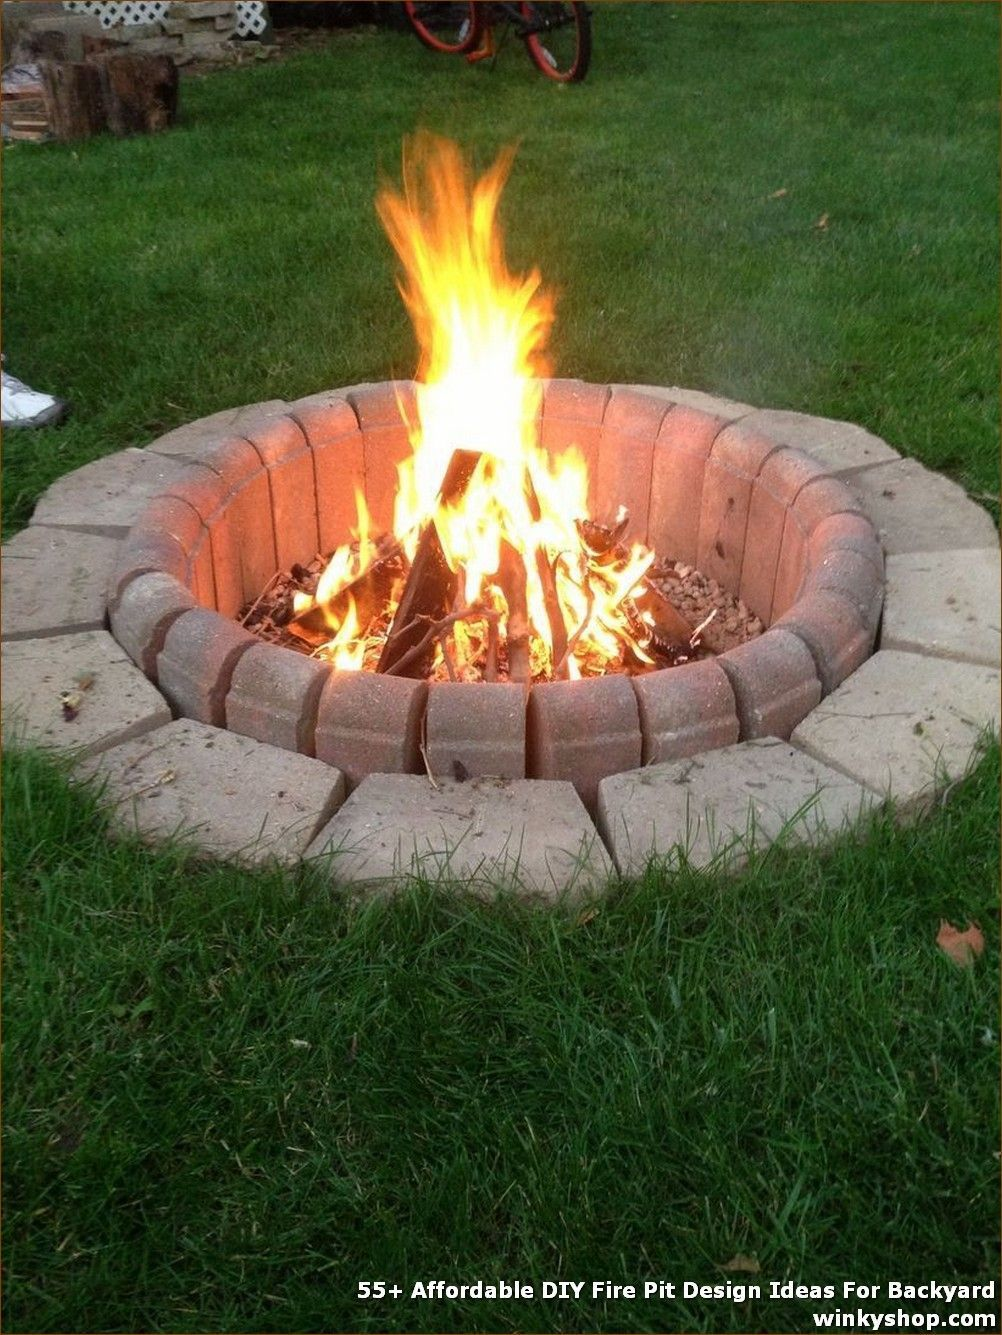 55 Affordable Diy Fire Pit Design Ideas For Backyard Firepitideas 55 Affordable Diy Fire Pit Design Ideas Outside Fire Pits Backyard Fire Rustic Fire Pits